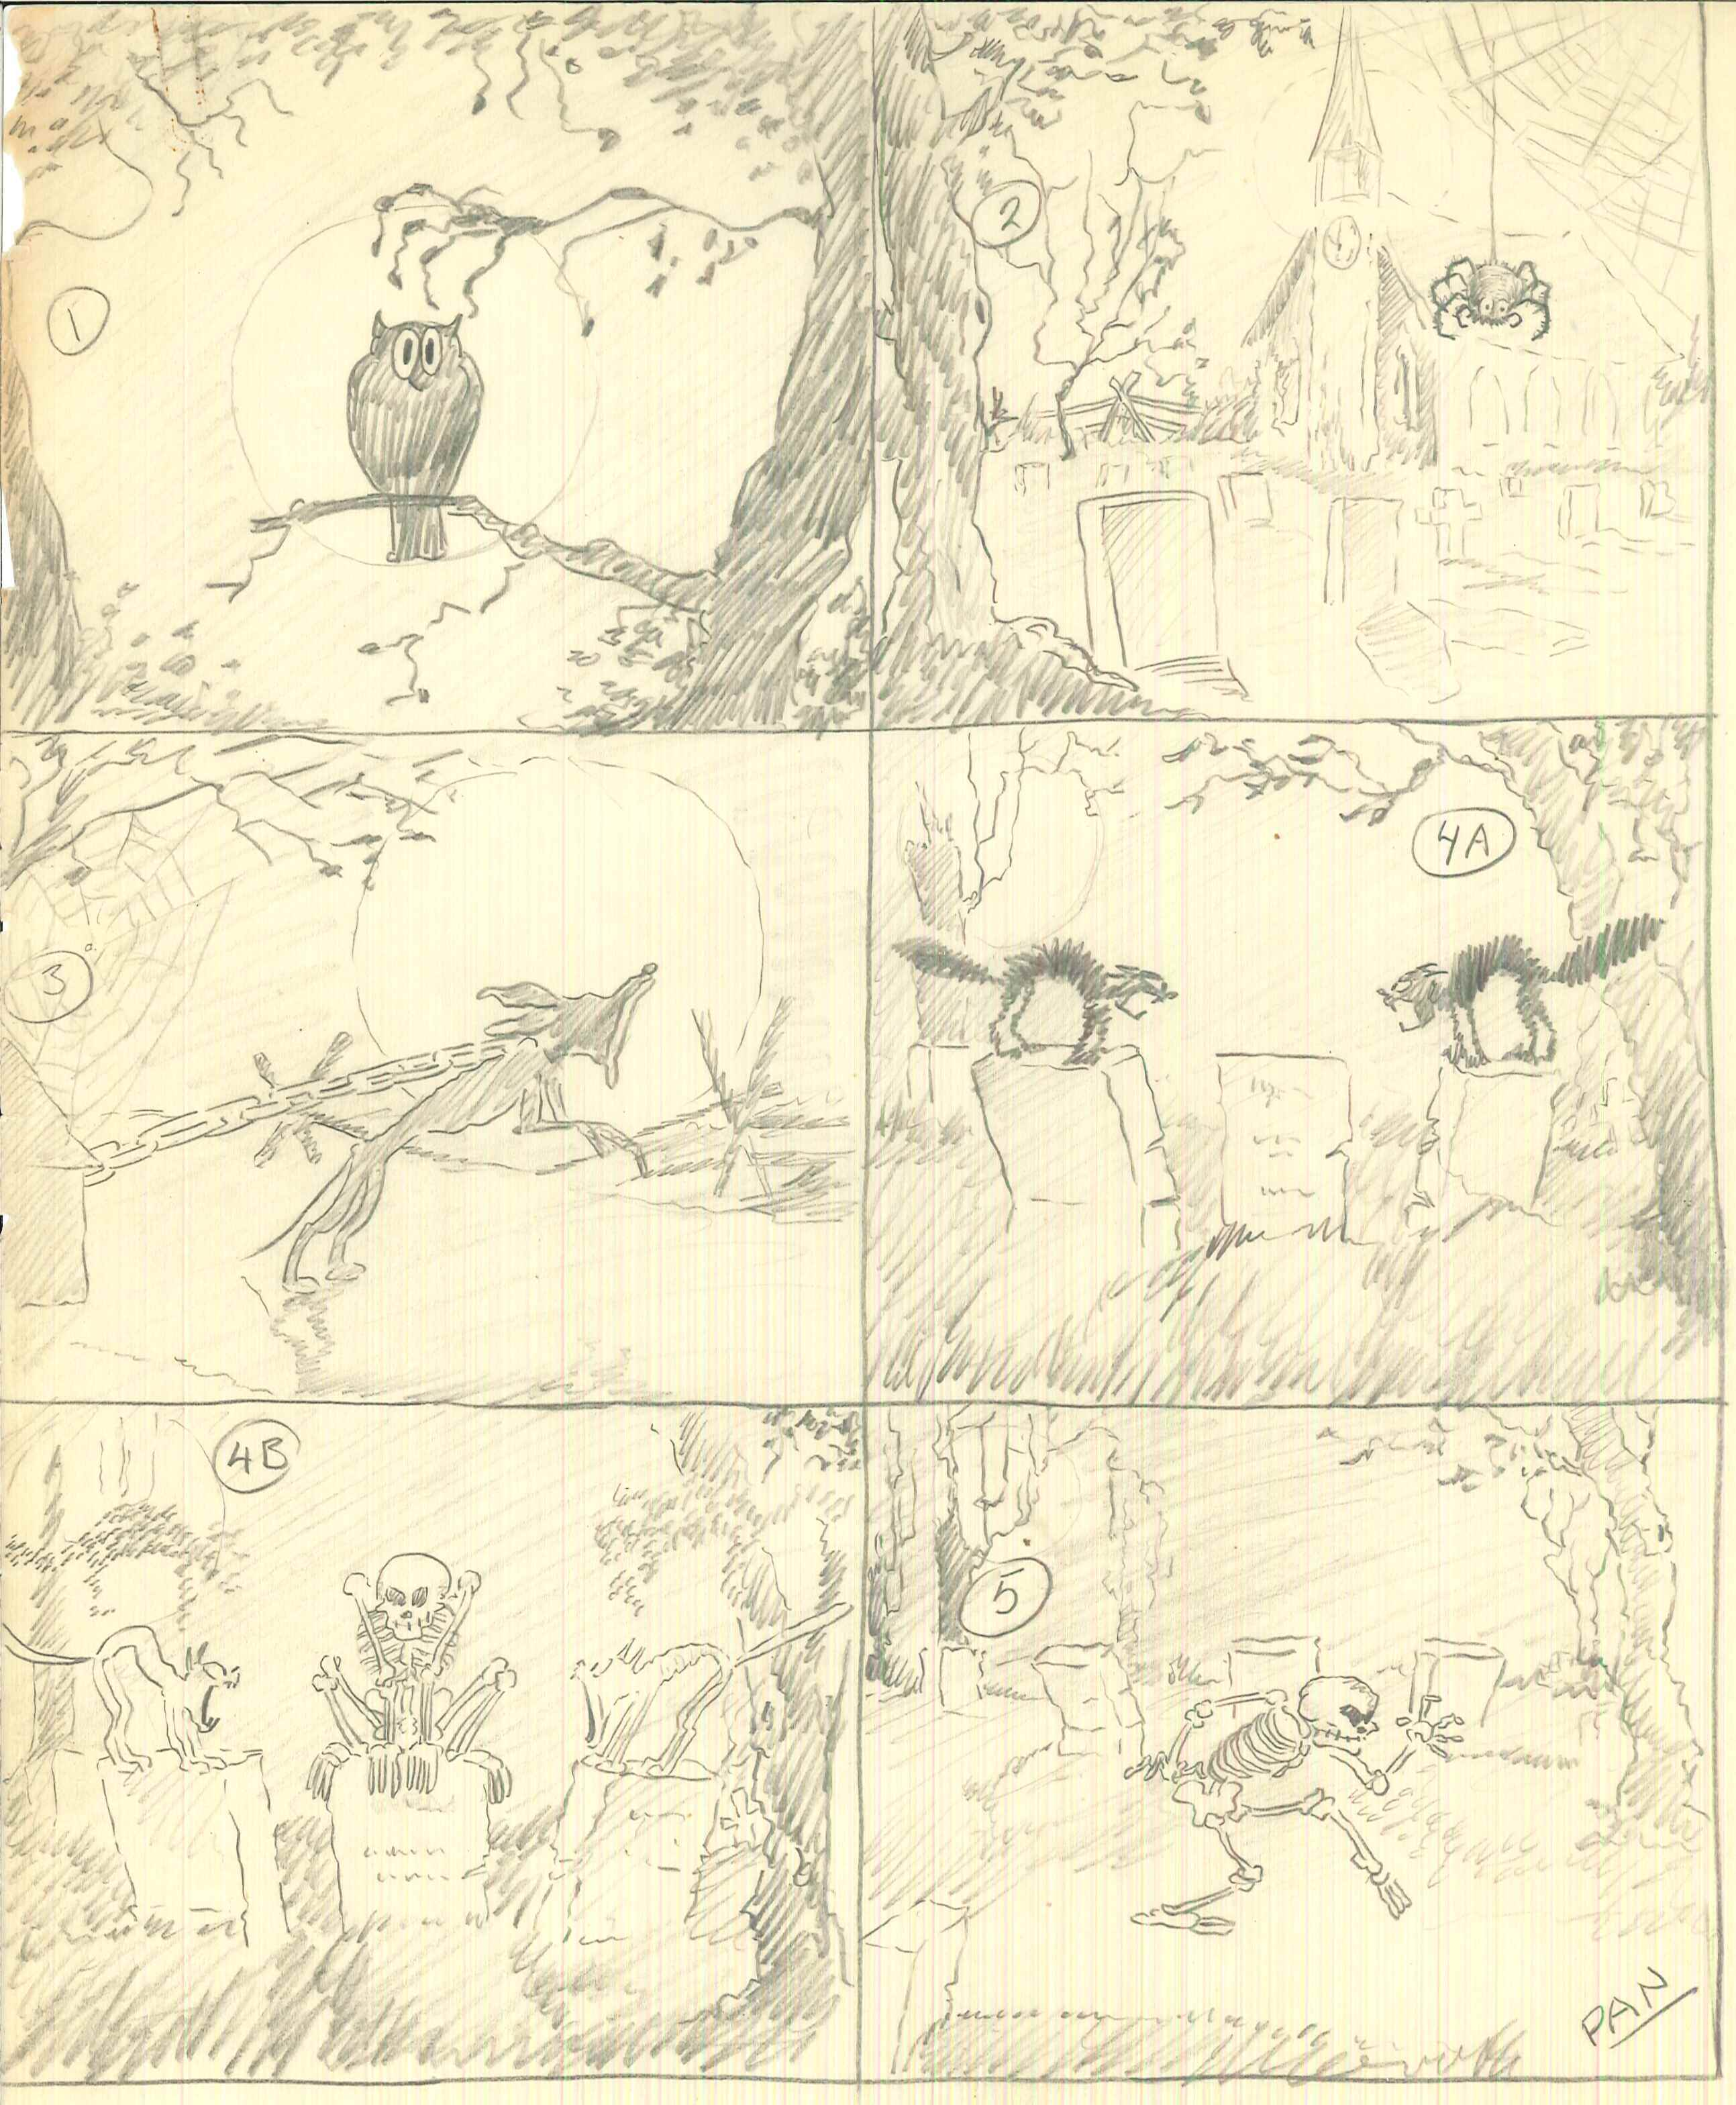 american heritage center ahc alwaysarchiving information and Vaudeville Performers 1930 stalling sketches page 1